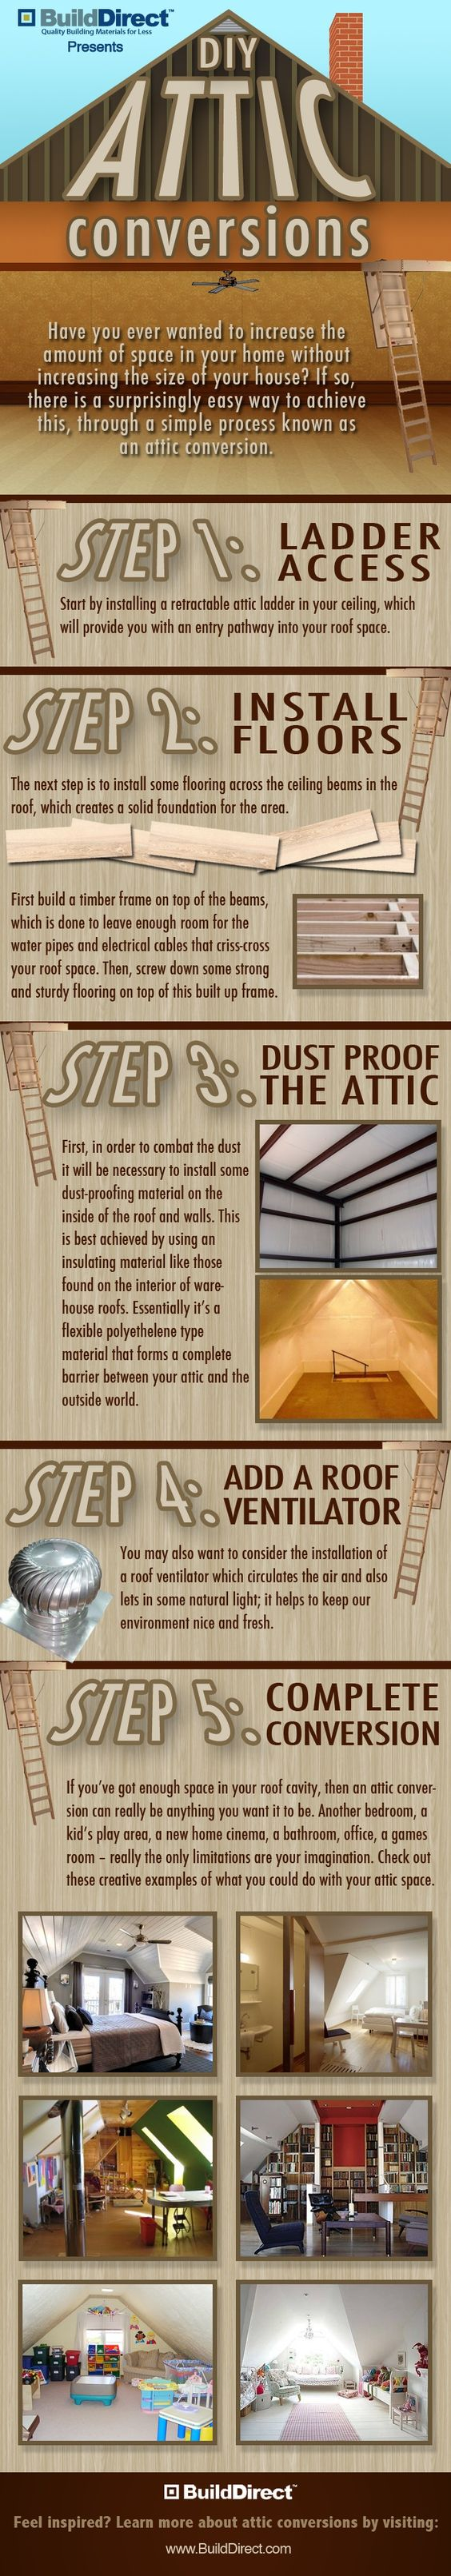 How to convert your attic attic conversions attic bedroom attic family room attic bathroom